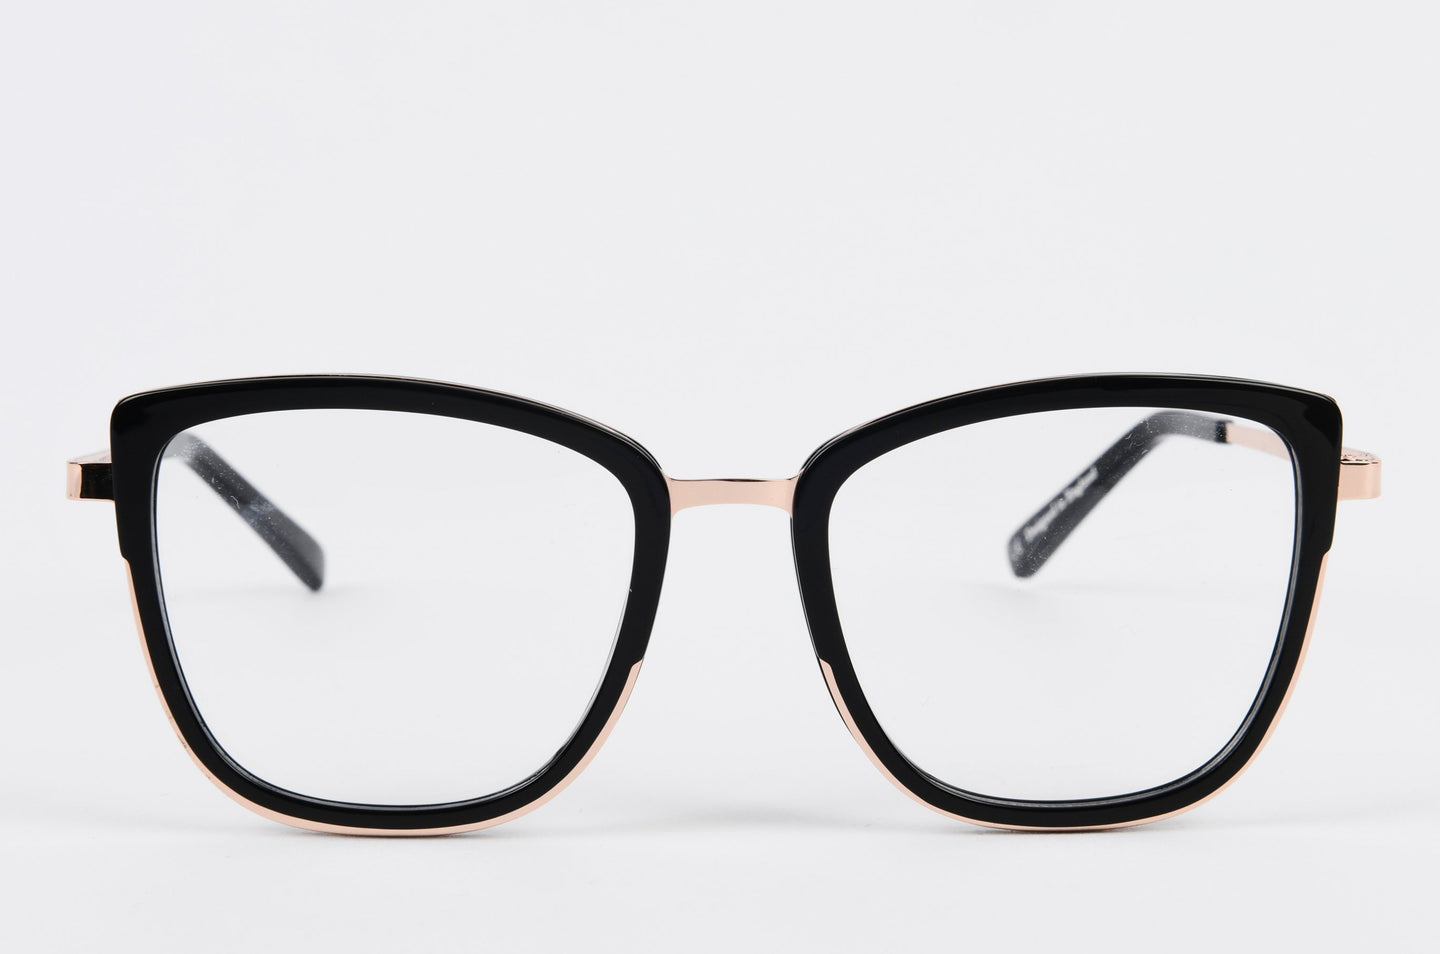 black and gold winged optical prescription glasses frame